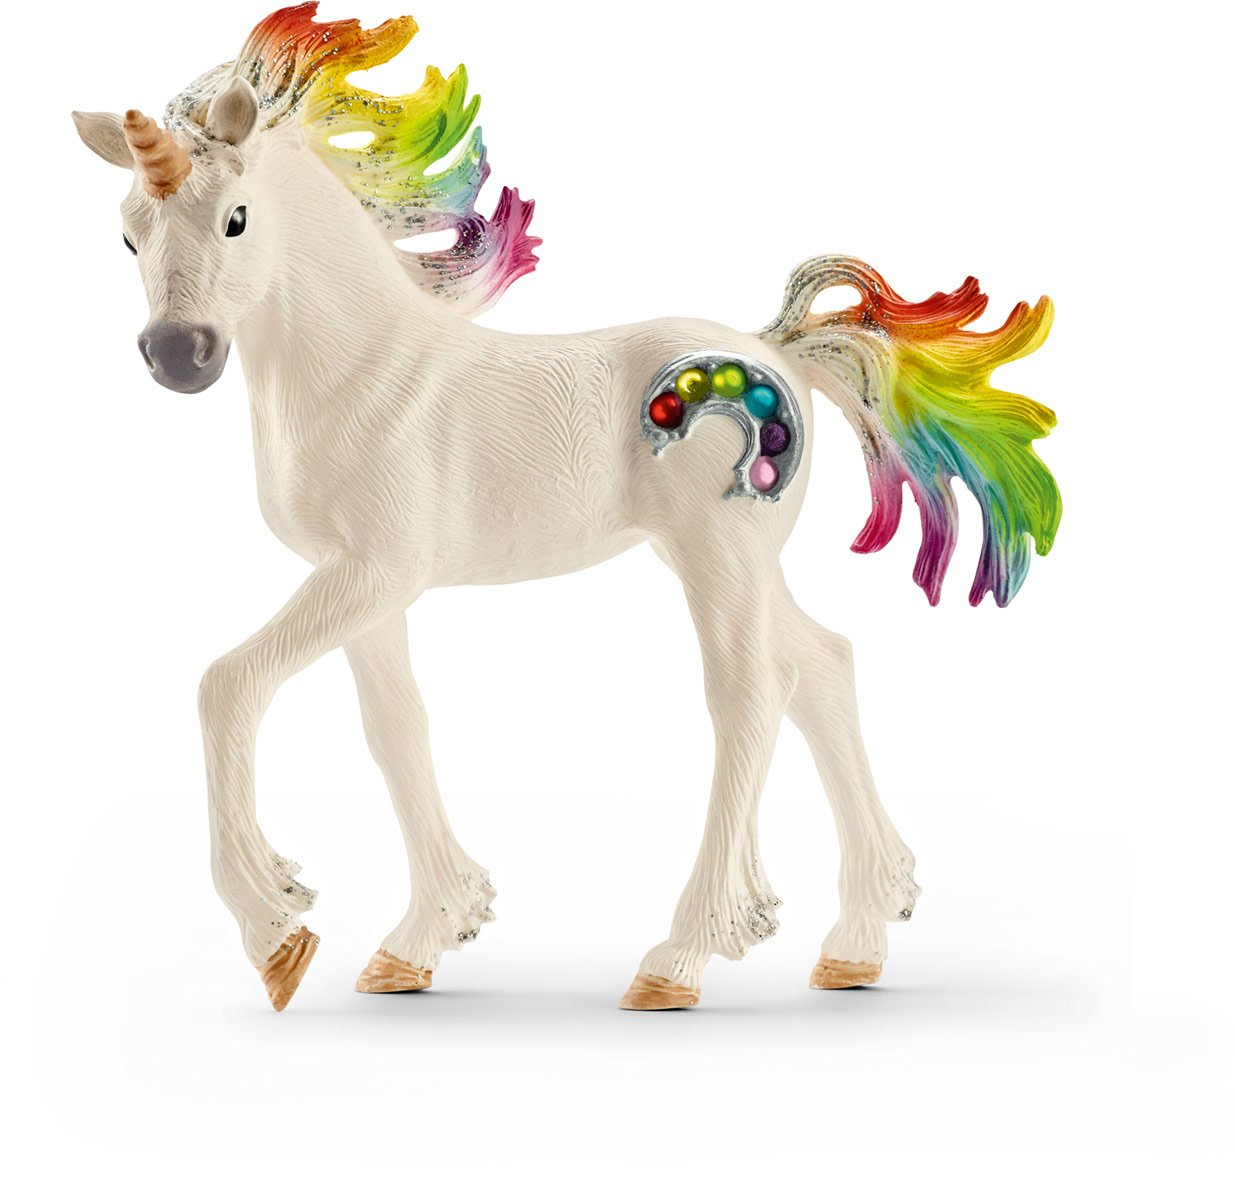 23 Best Unicorn Toys and Gifts for Girls Reviews of 2021 27